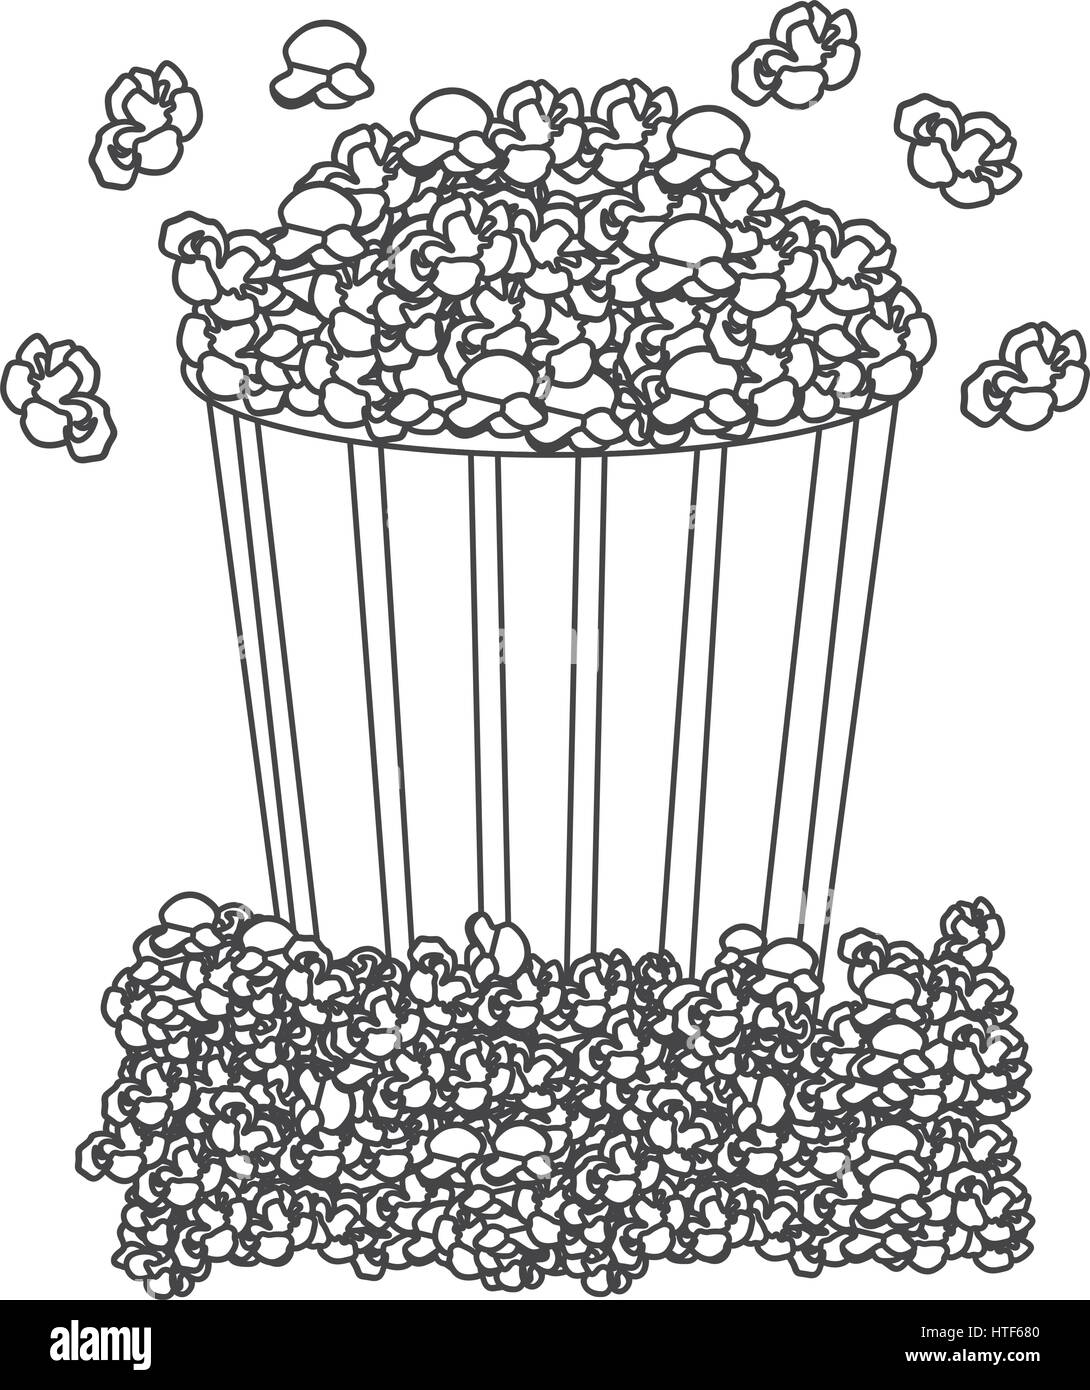 grayscale contour with popcorn container - Stock Image